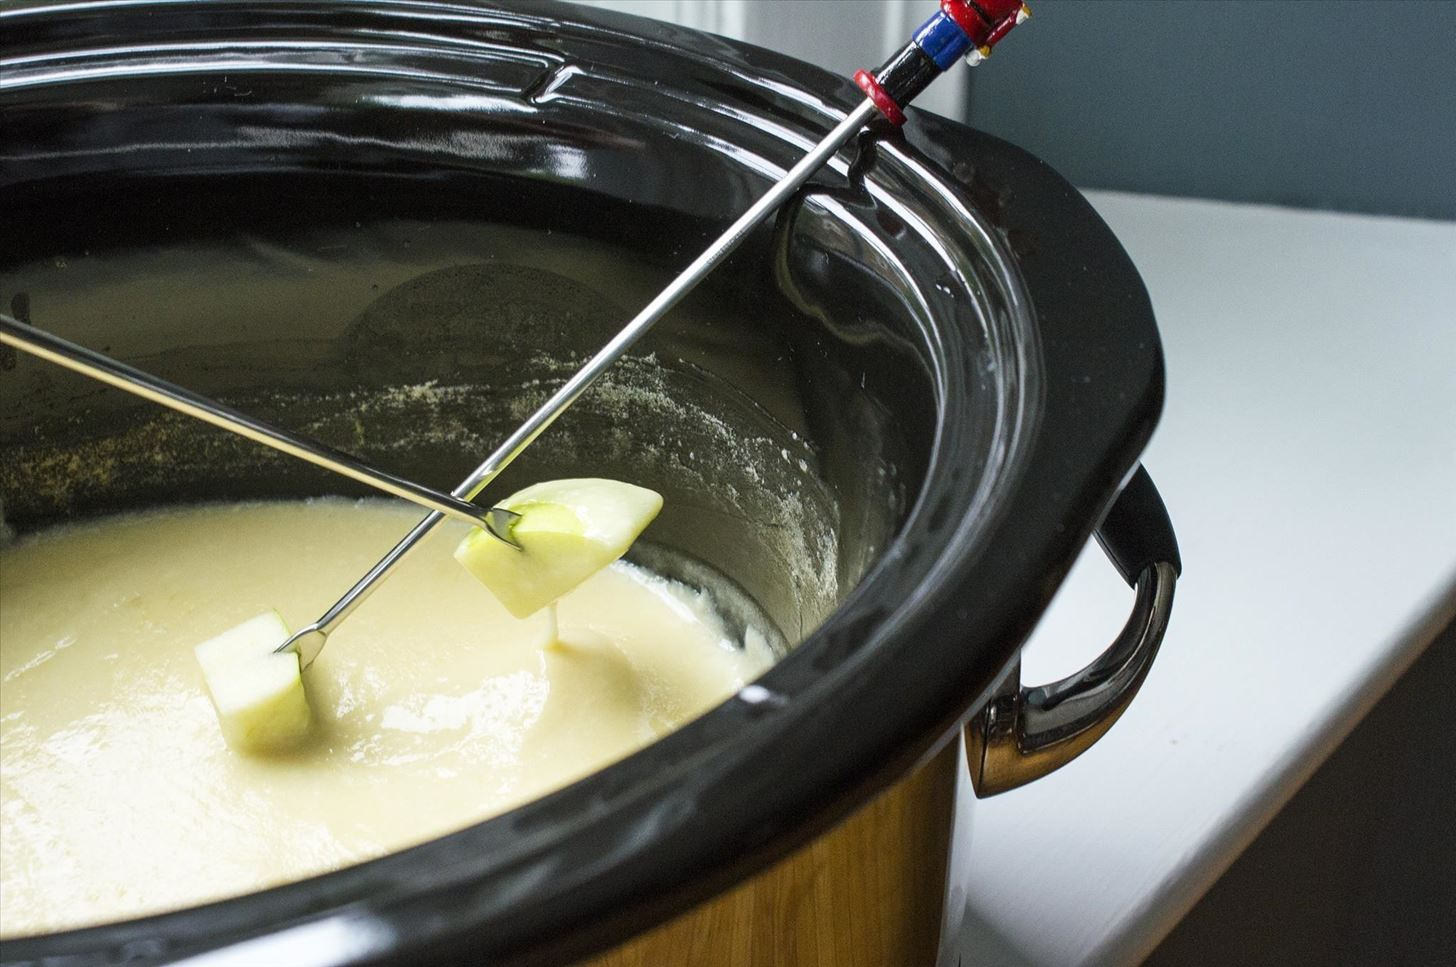 How to Make Cheese Fondue Without a Fondue Pot